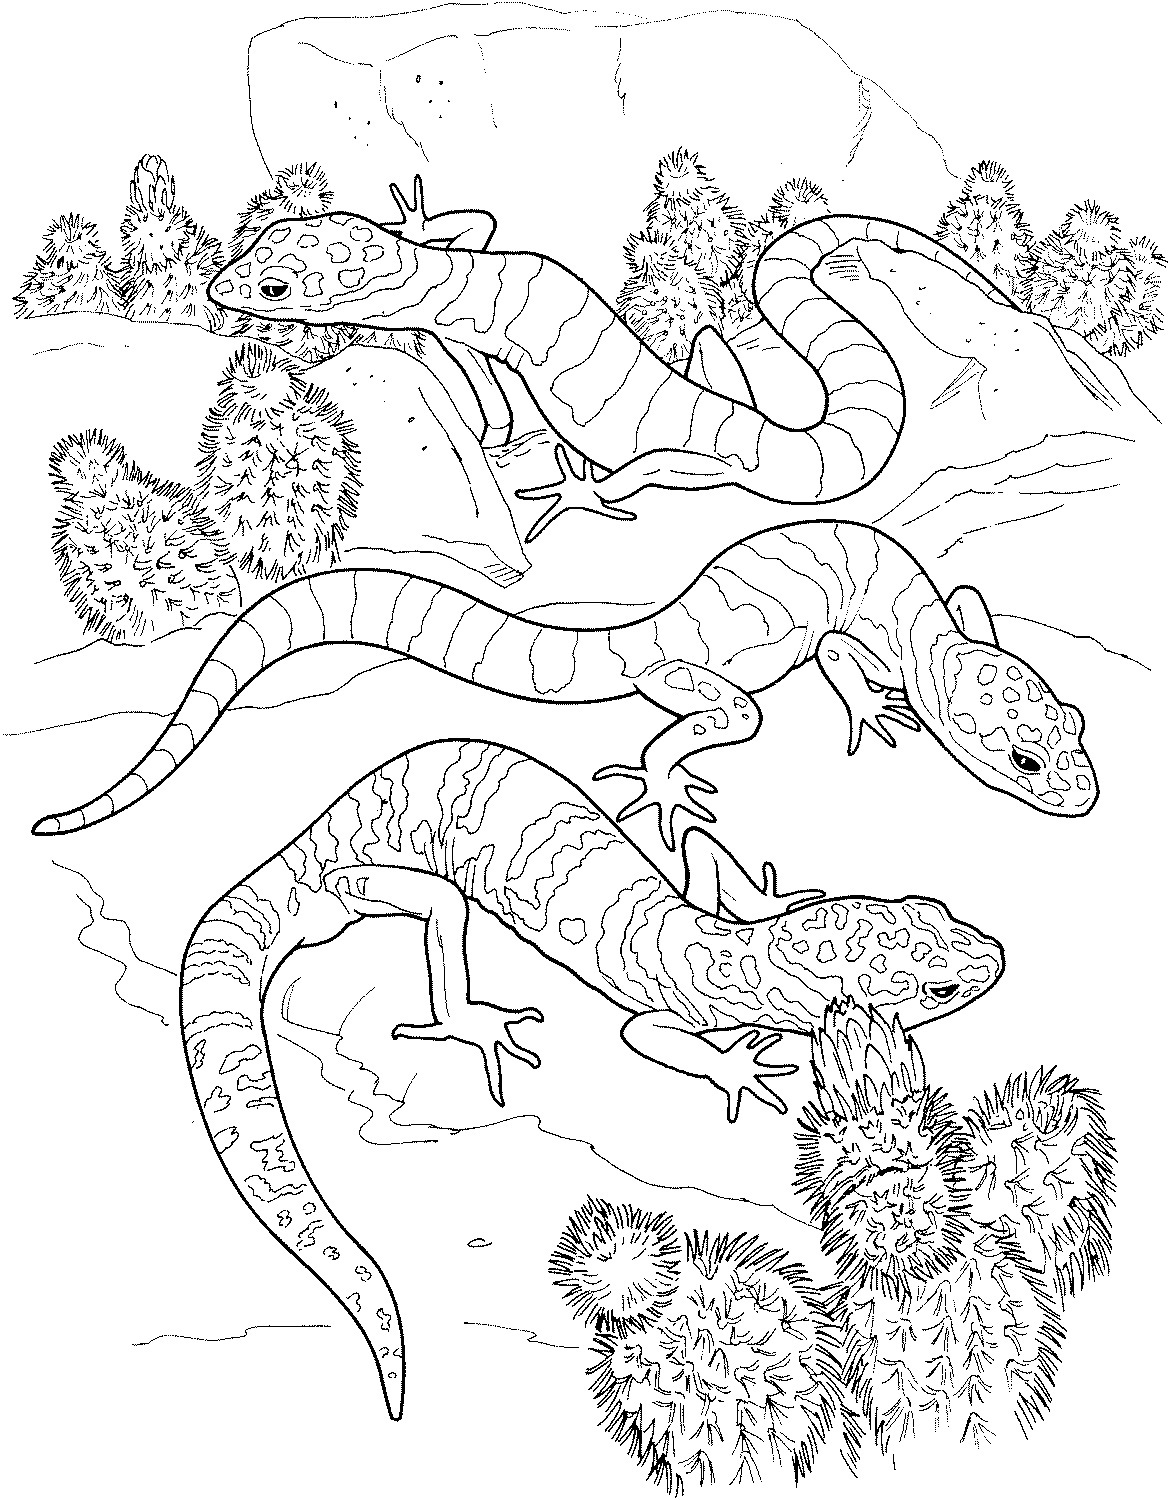 Lizards coloring pages to print - Lizard Coloring Page New